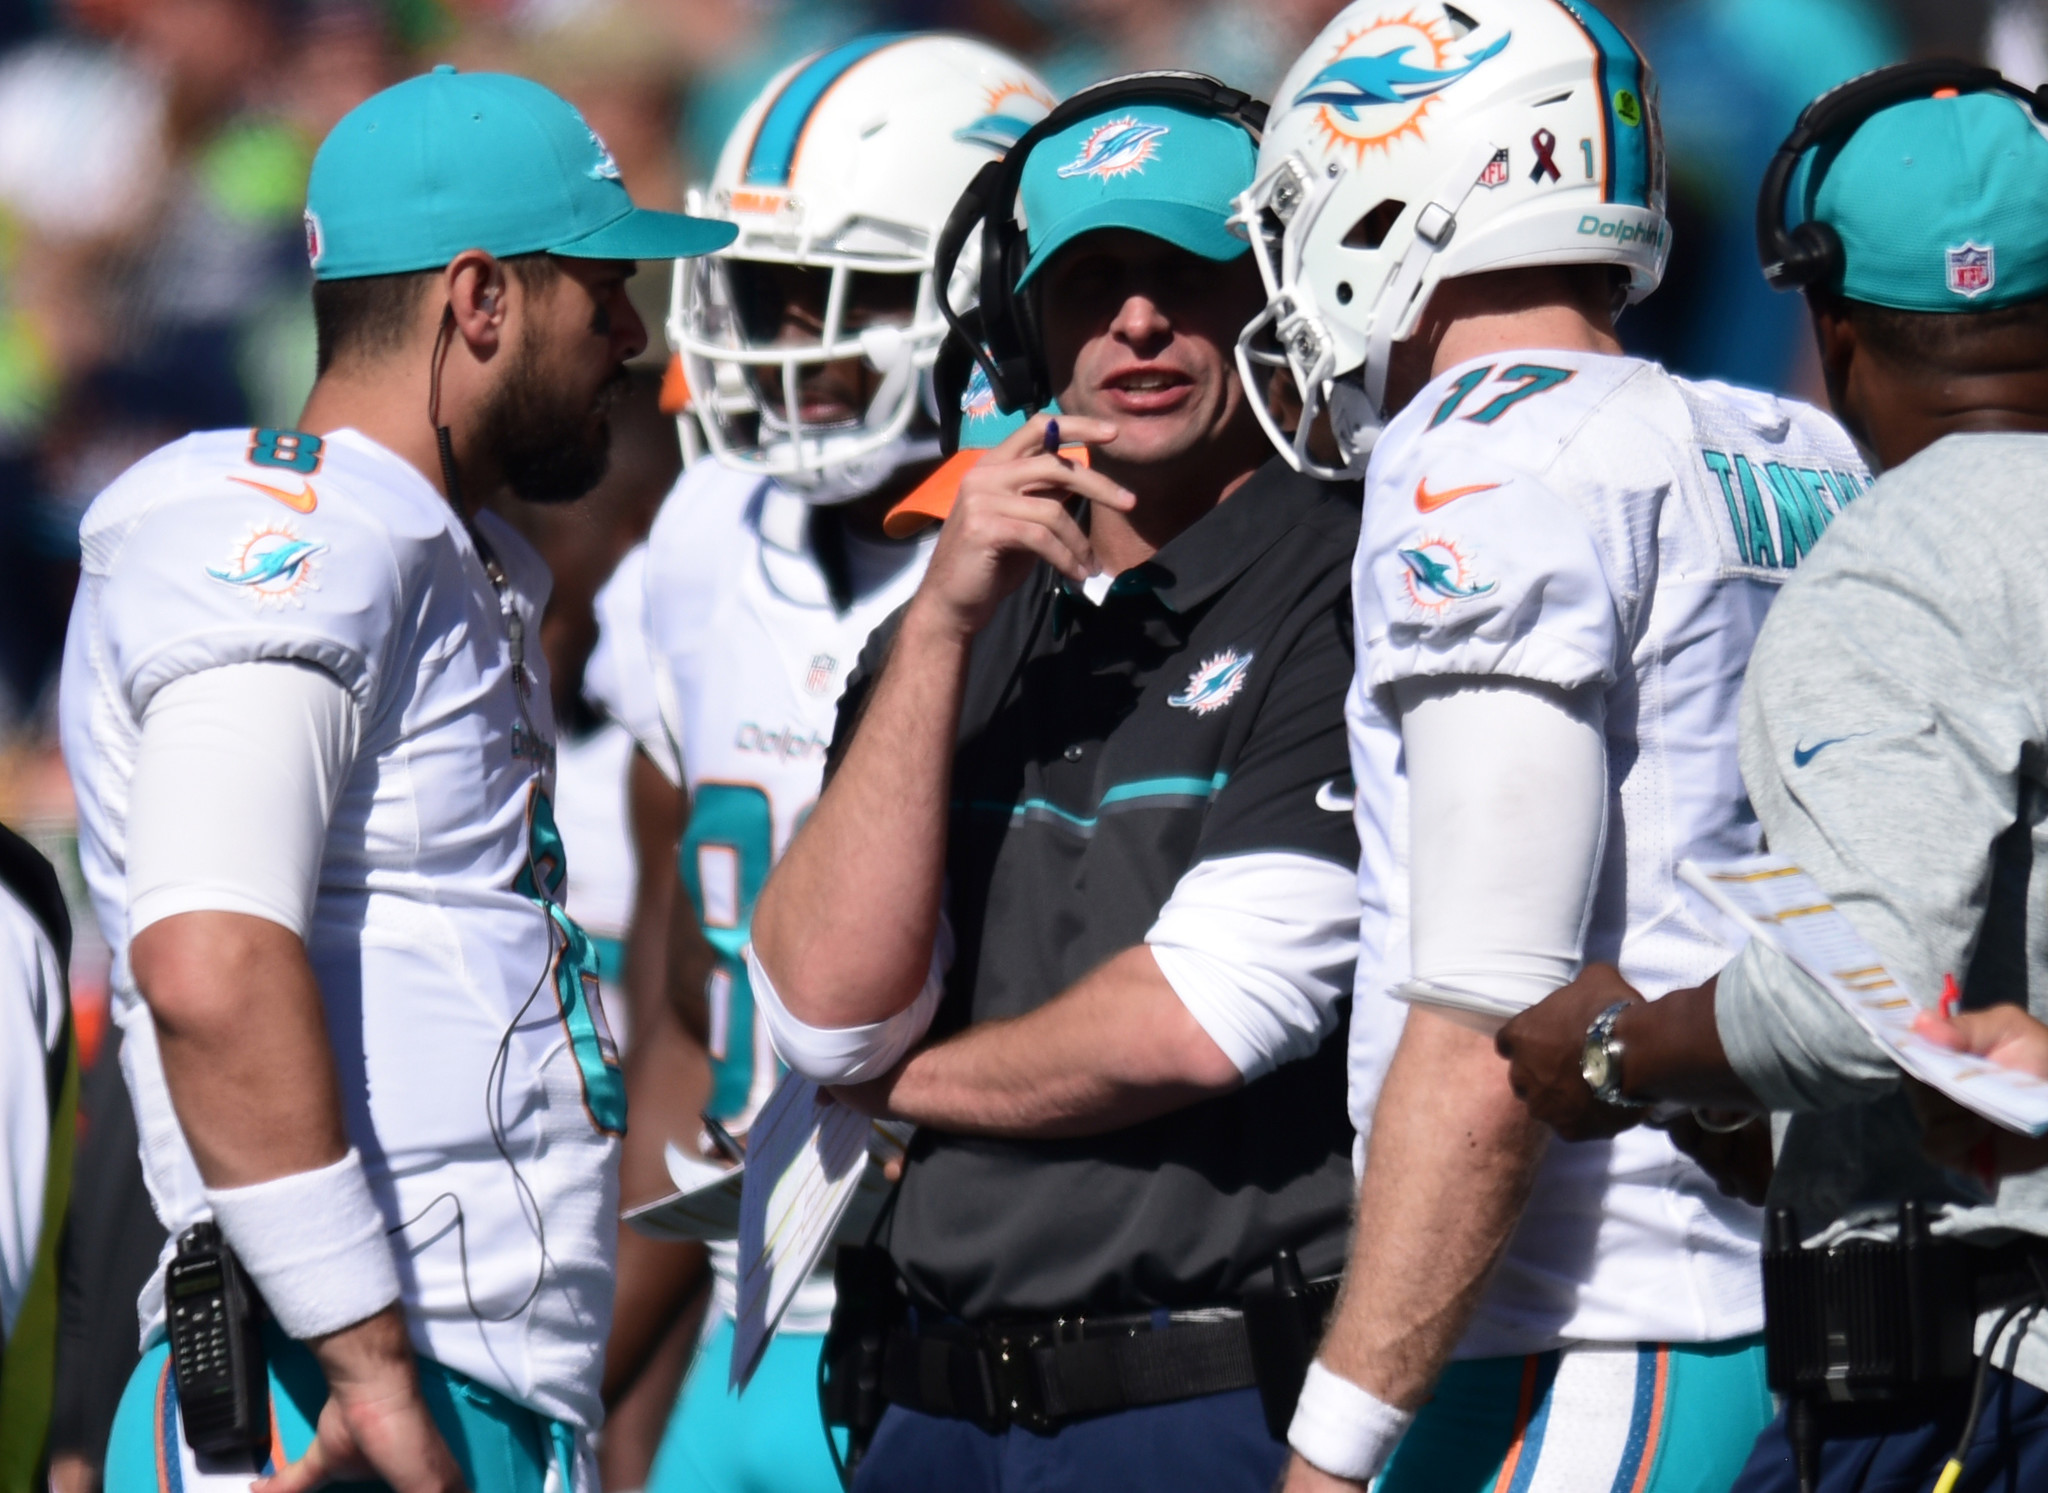 Sfl-perkins-dolphins-qb-ryan-tannehill-seems-beyond-criticism-from-coach-adam-gase-commentary-20160927